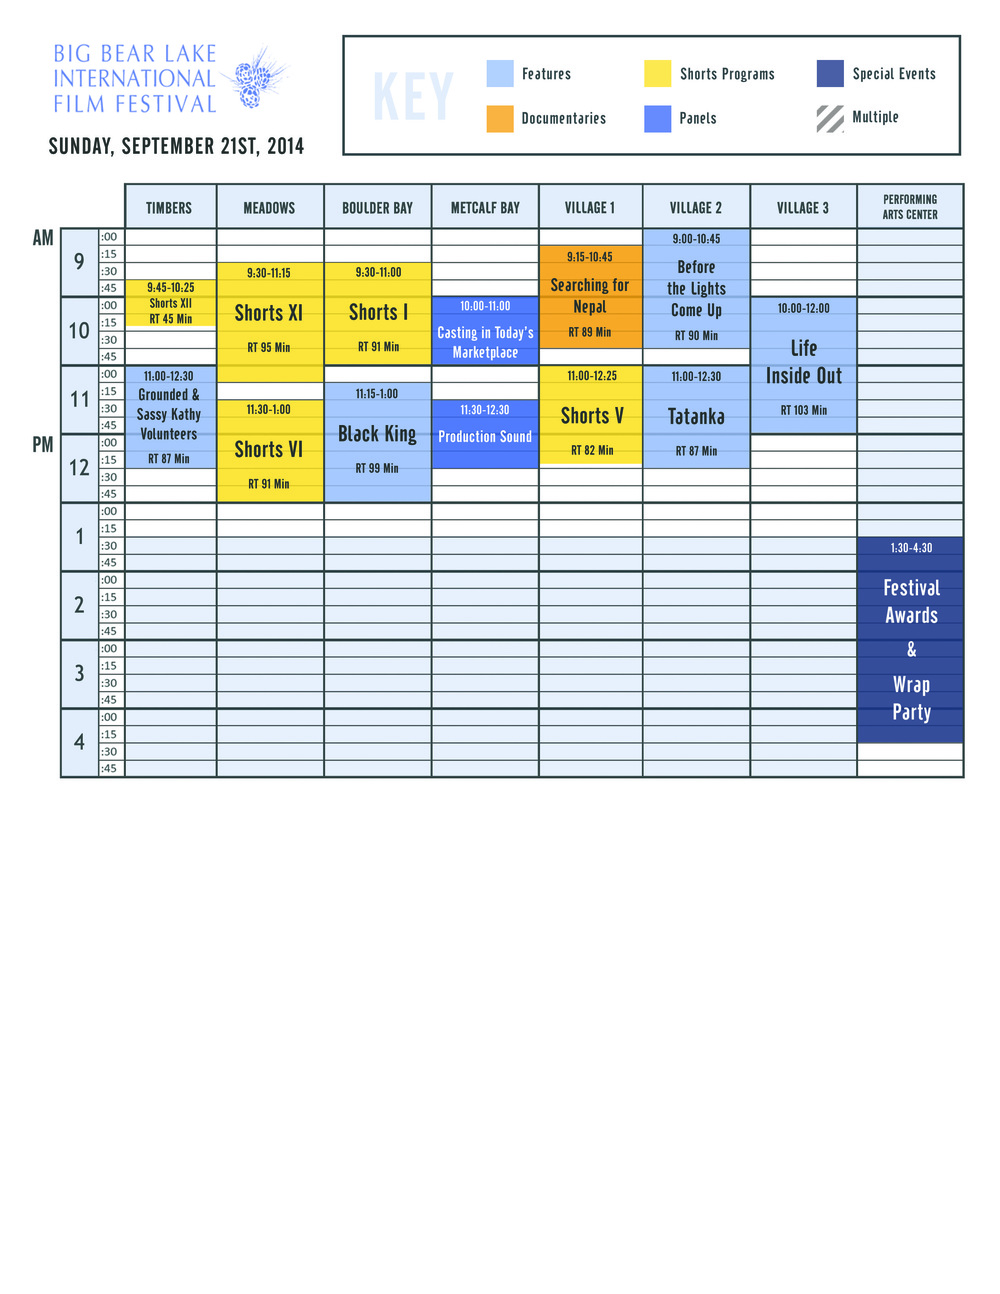 BBLIFF_2014_FINAL SCHEDULE (JPEG)_Page_3.jpg